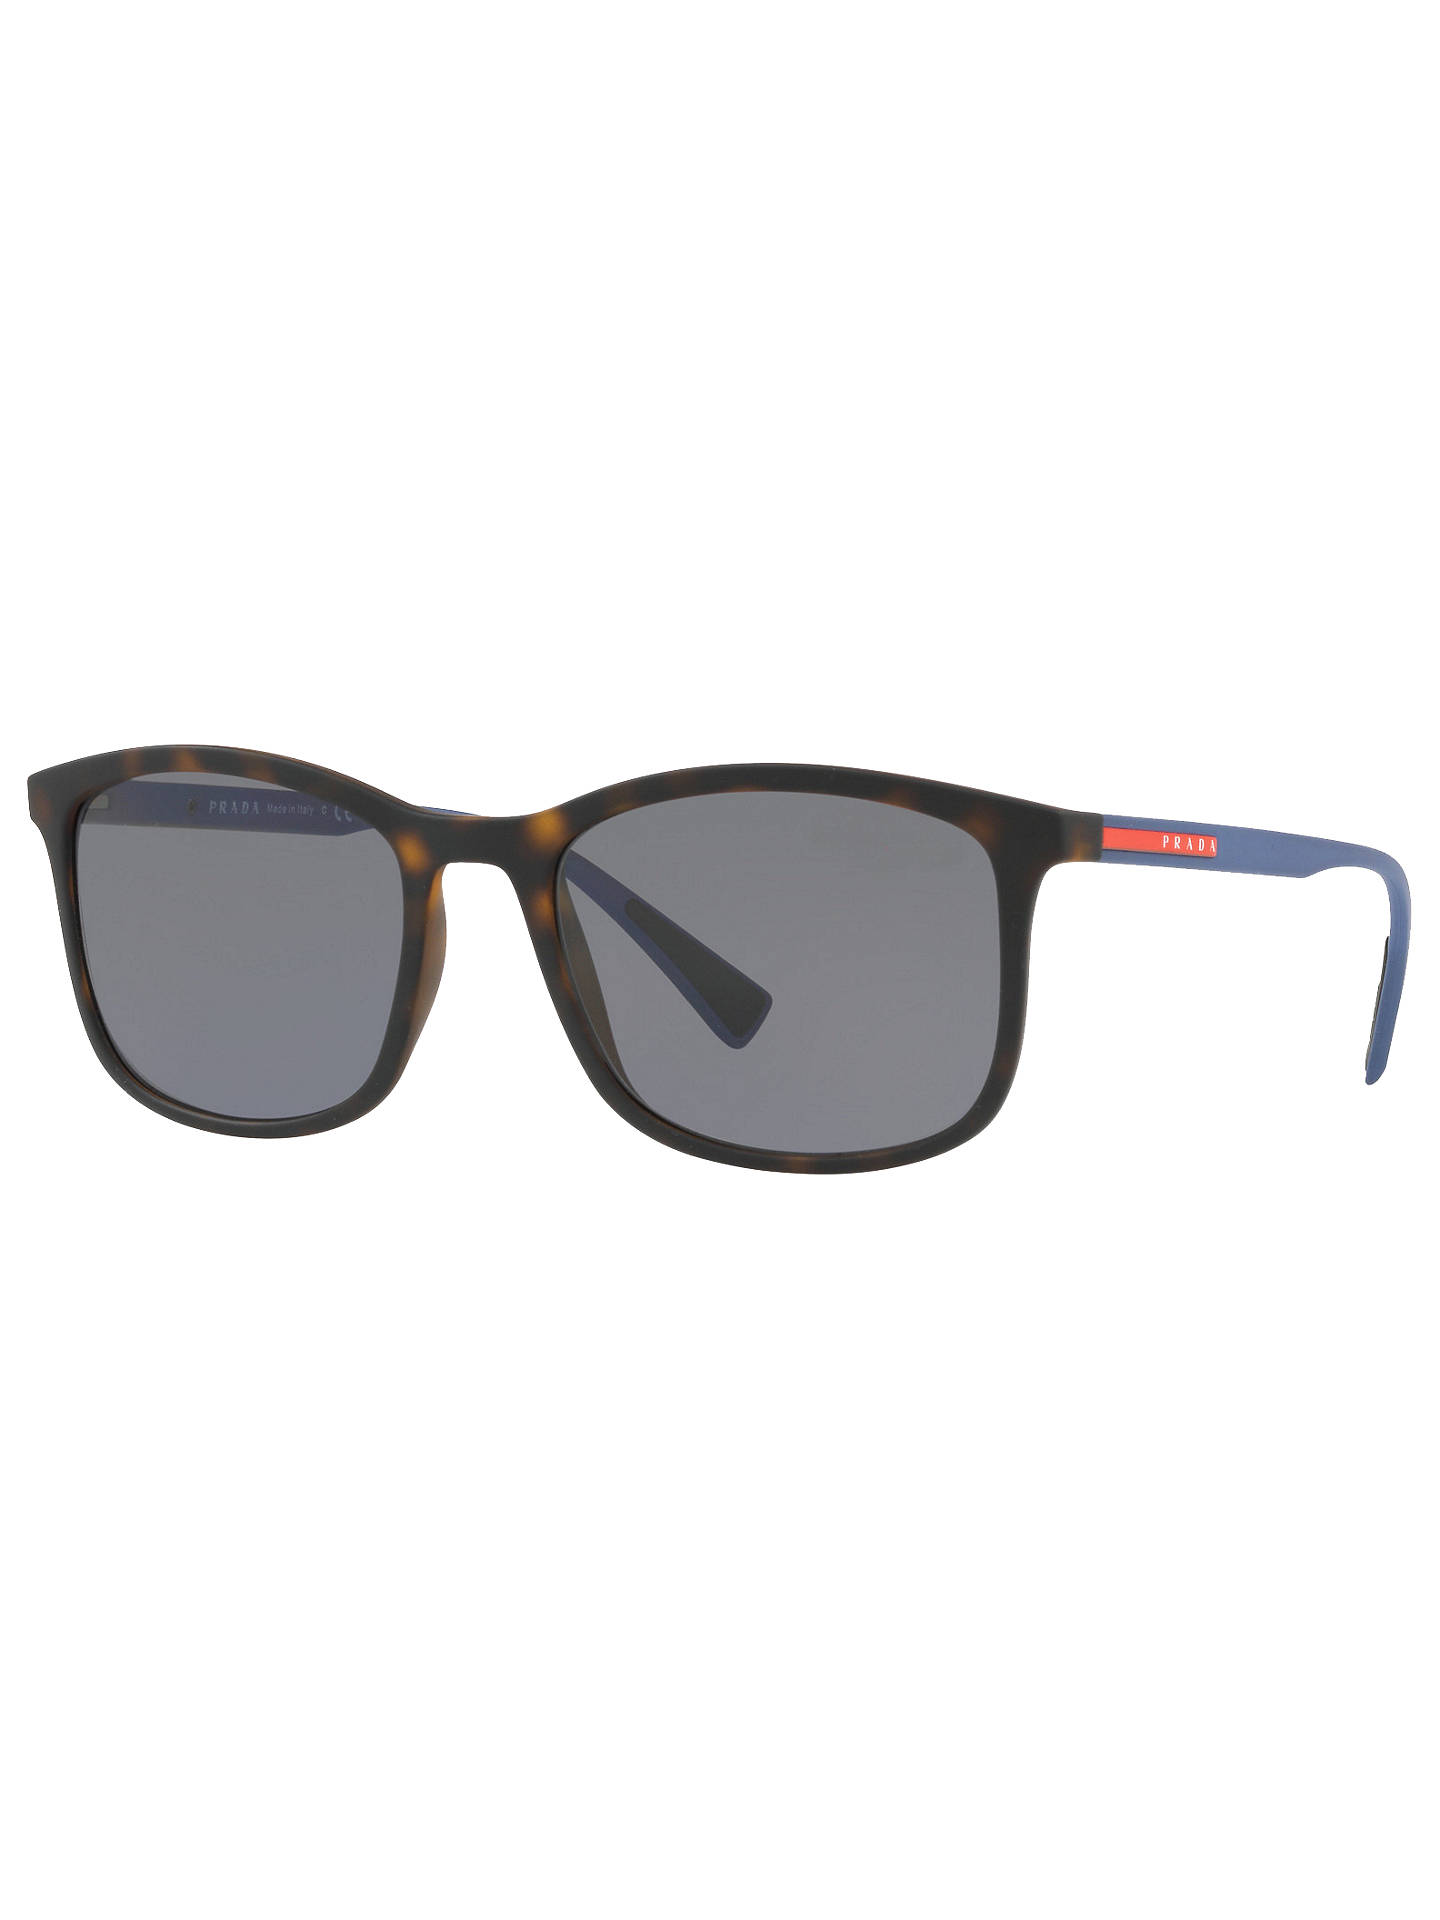 94d0dad049 Prada Linea Rossa PS 01TS Men s Polarised Rectangular Sunglasses at ...